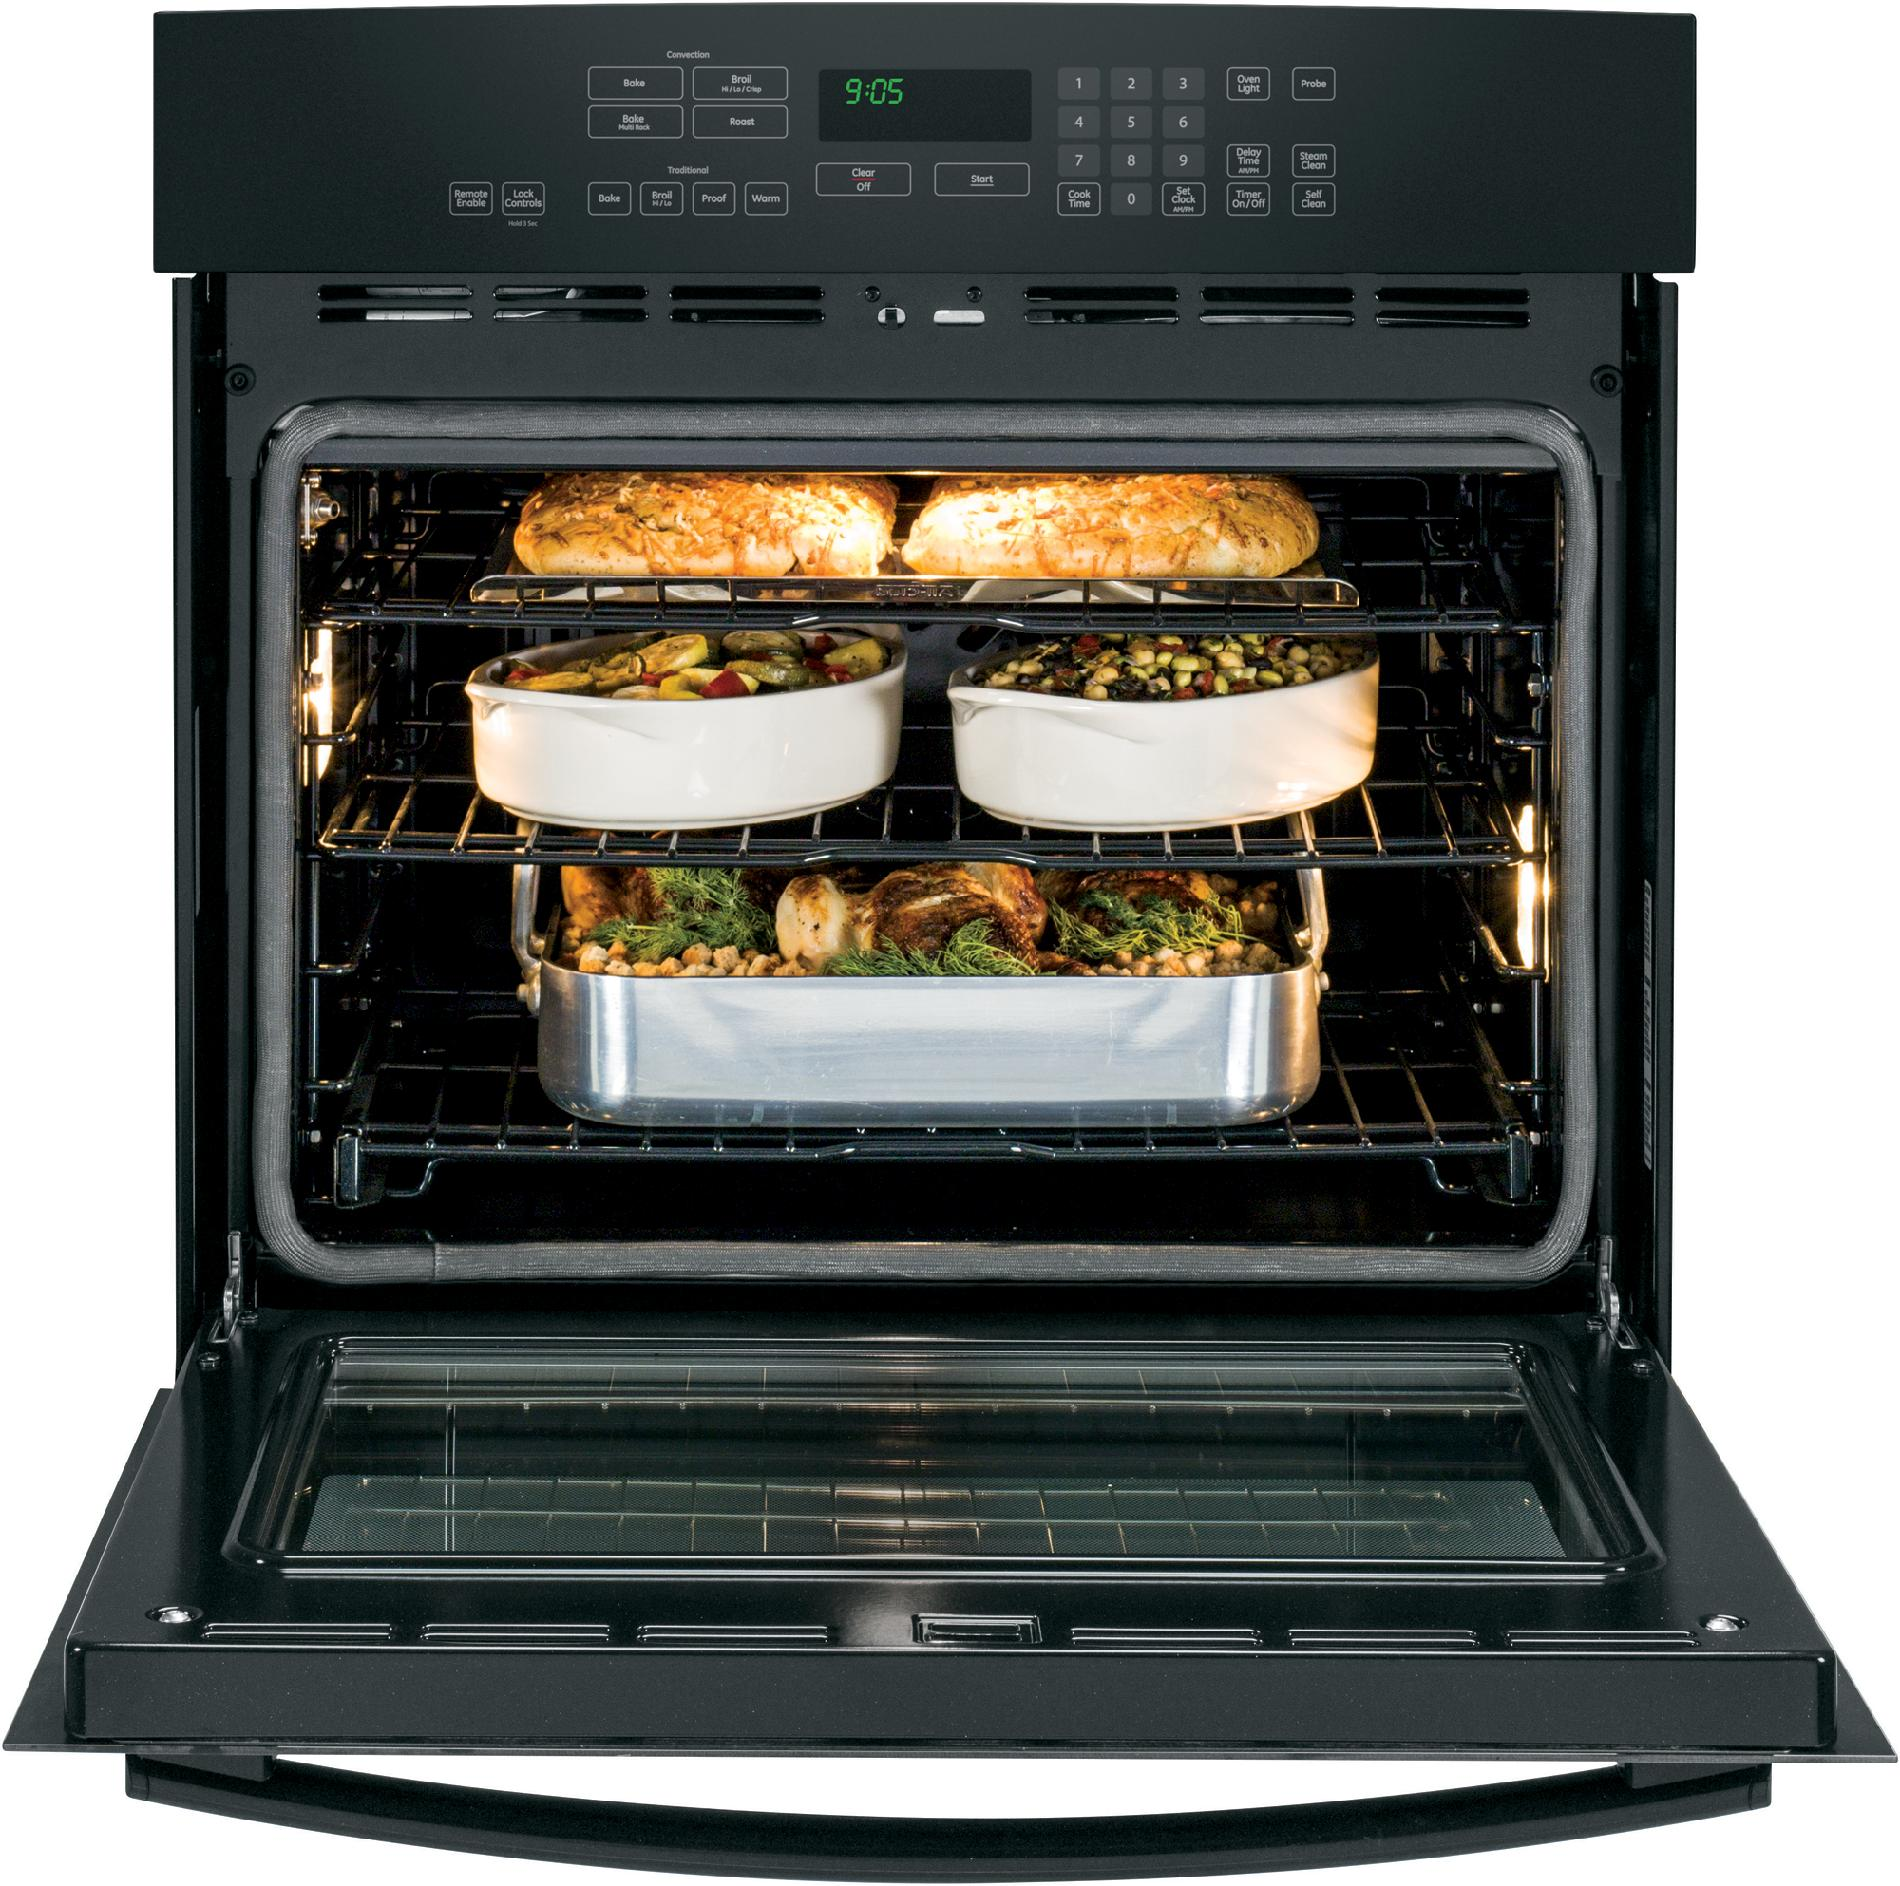 "GE Profile™ Series 30"" Electric Single Wall Oven w/ True Convection - Black"